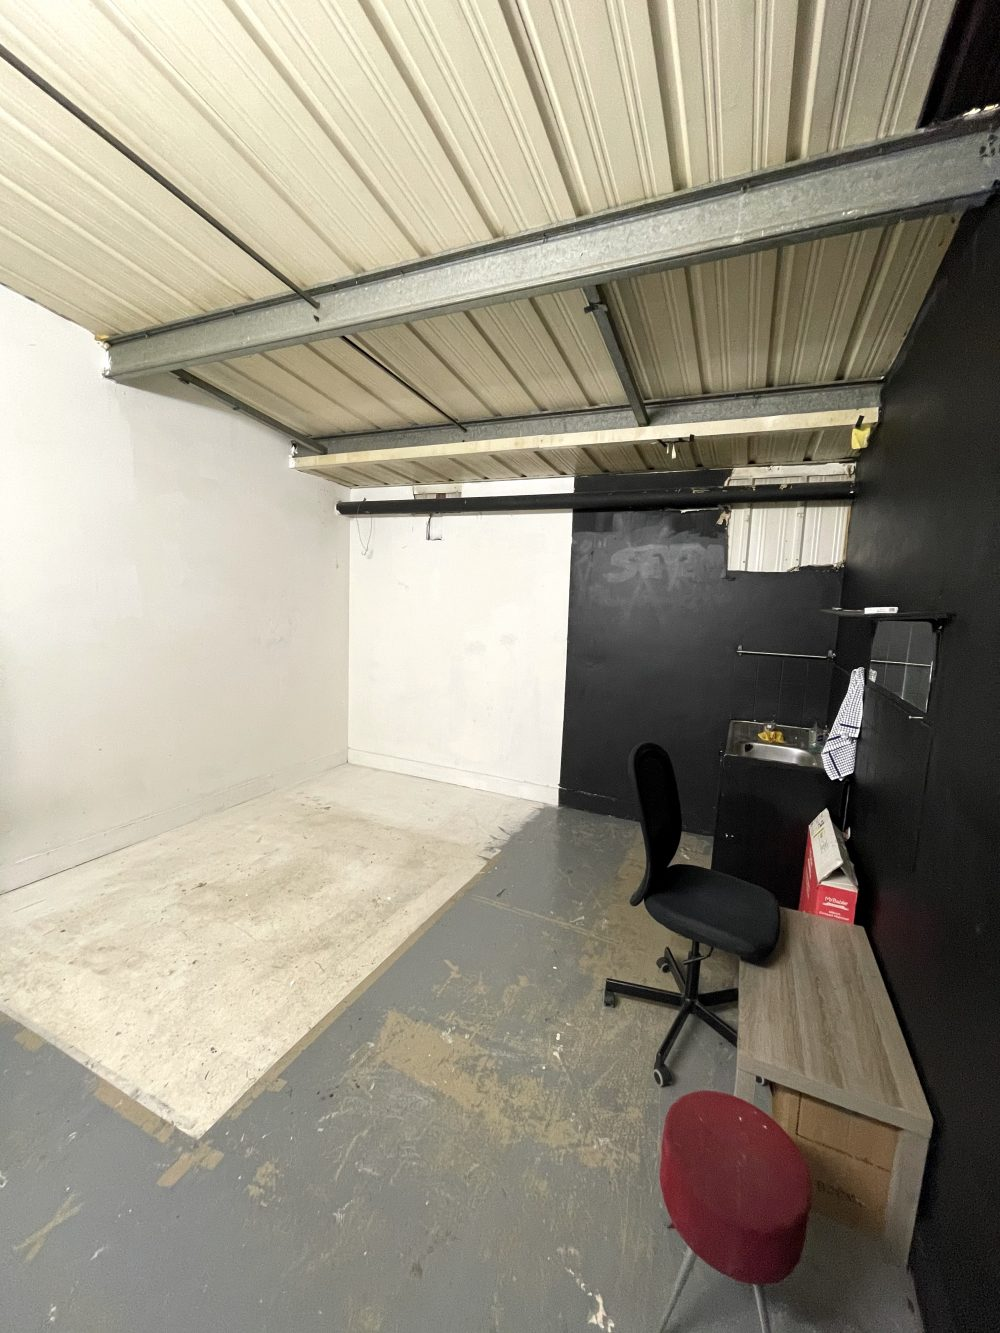 Light indurstrial unit to rent in N16 Stoke Newington Shelford Place PIc5